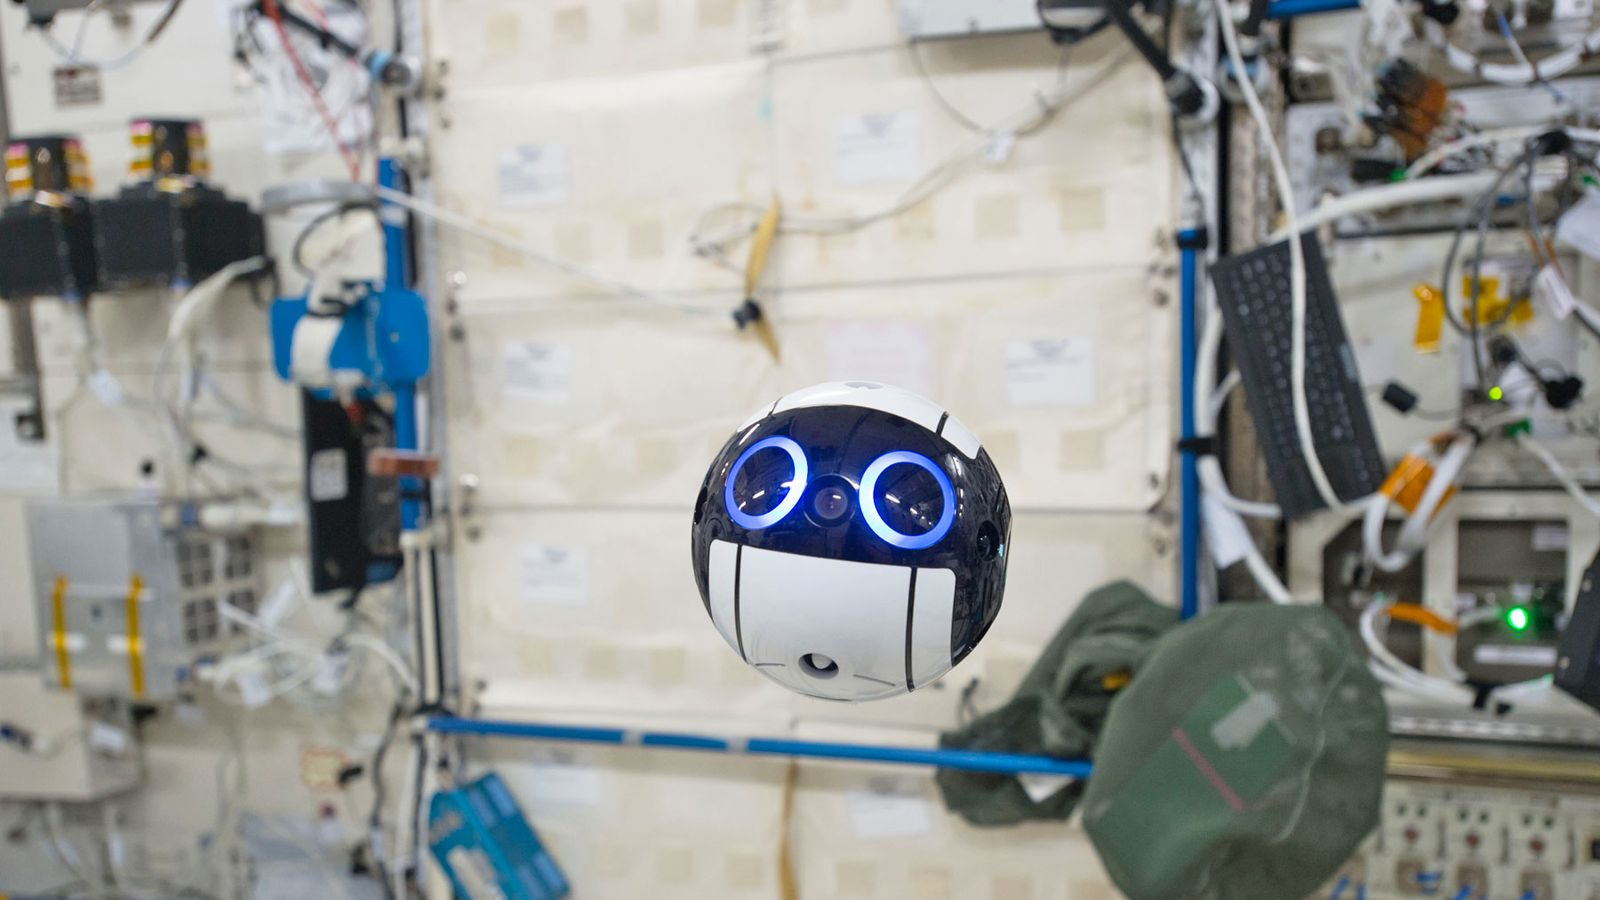 Dc5n United States It In English Created At 2017 07 19 0214 Electrical Installation Durante Electric Inc Pa Named The Int Ball Robot Can Float Around Station And Will Snap Pictures Of Its Astronaut Crew Helping Researchers Monitor Conditions